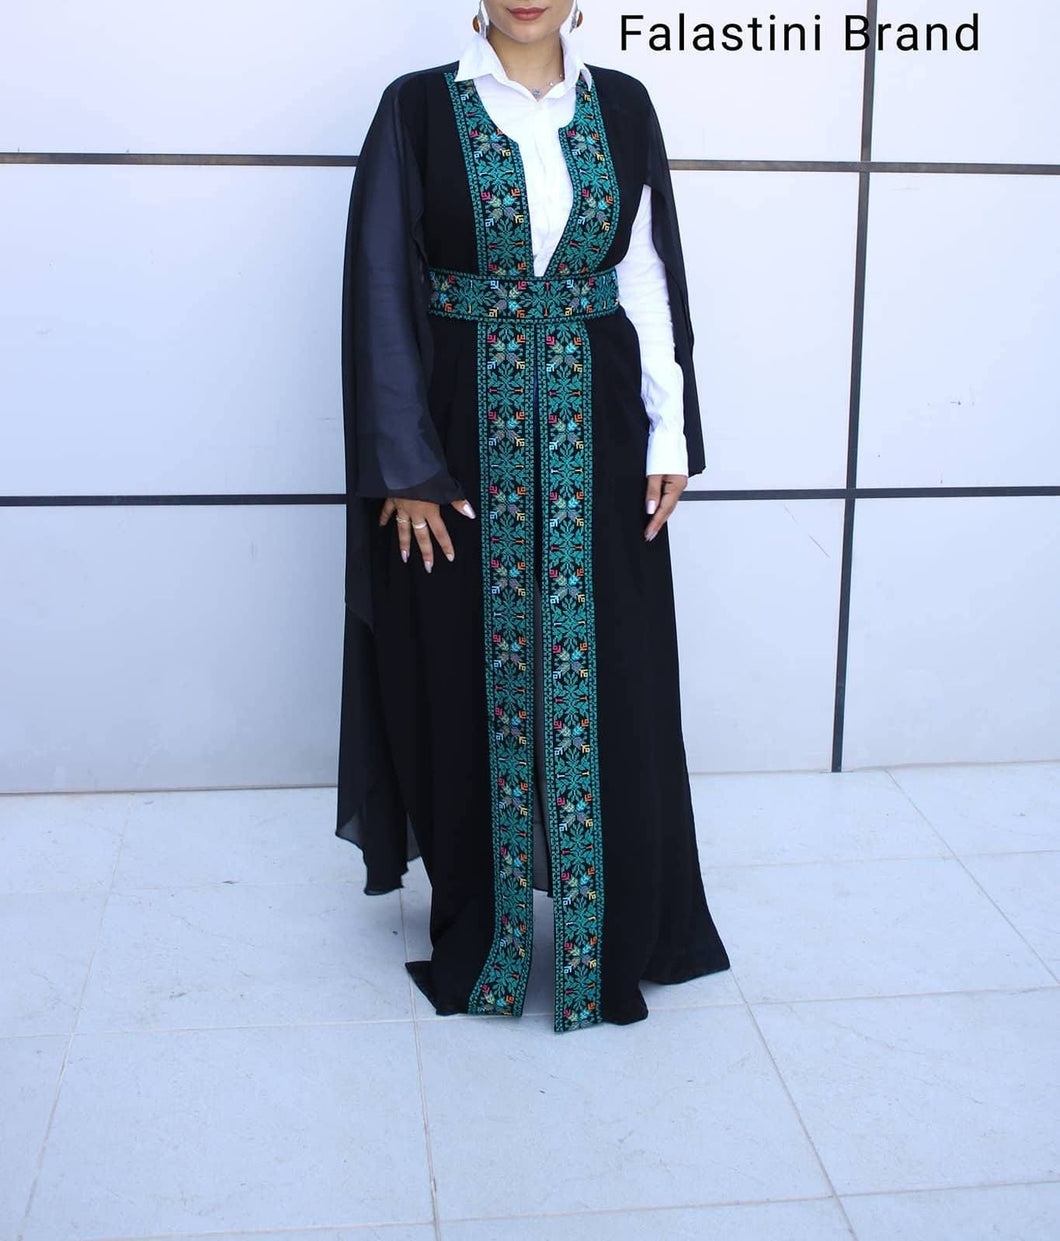 Free Size Black & Green Georgette Cloak Sleeve Elegant Embroidered Open Long Cape Style